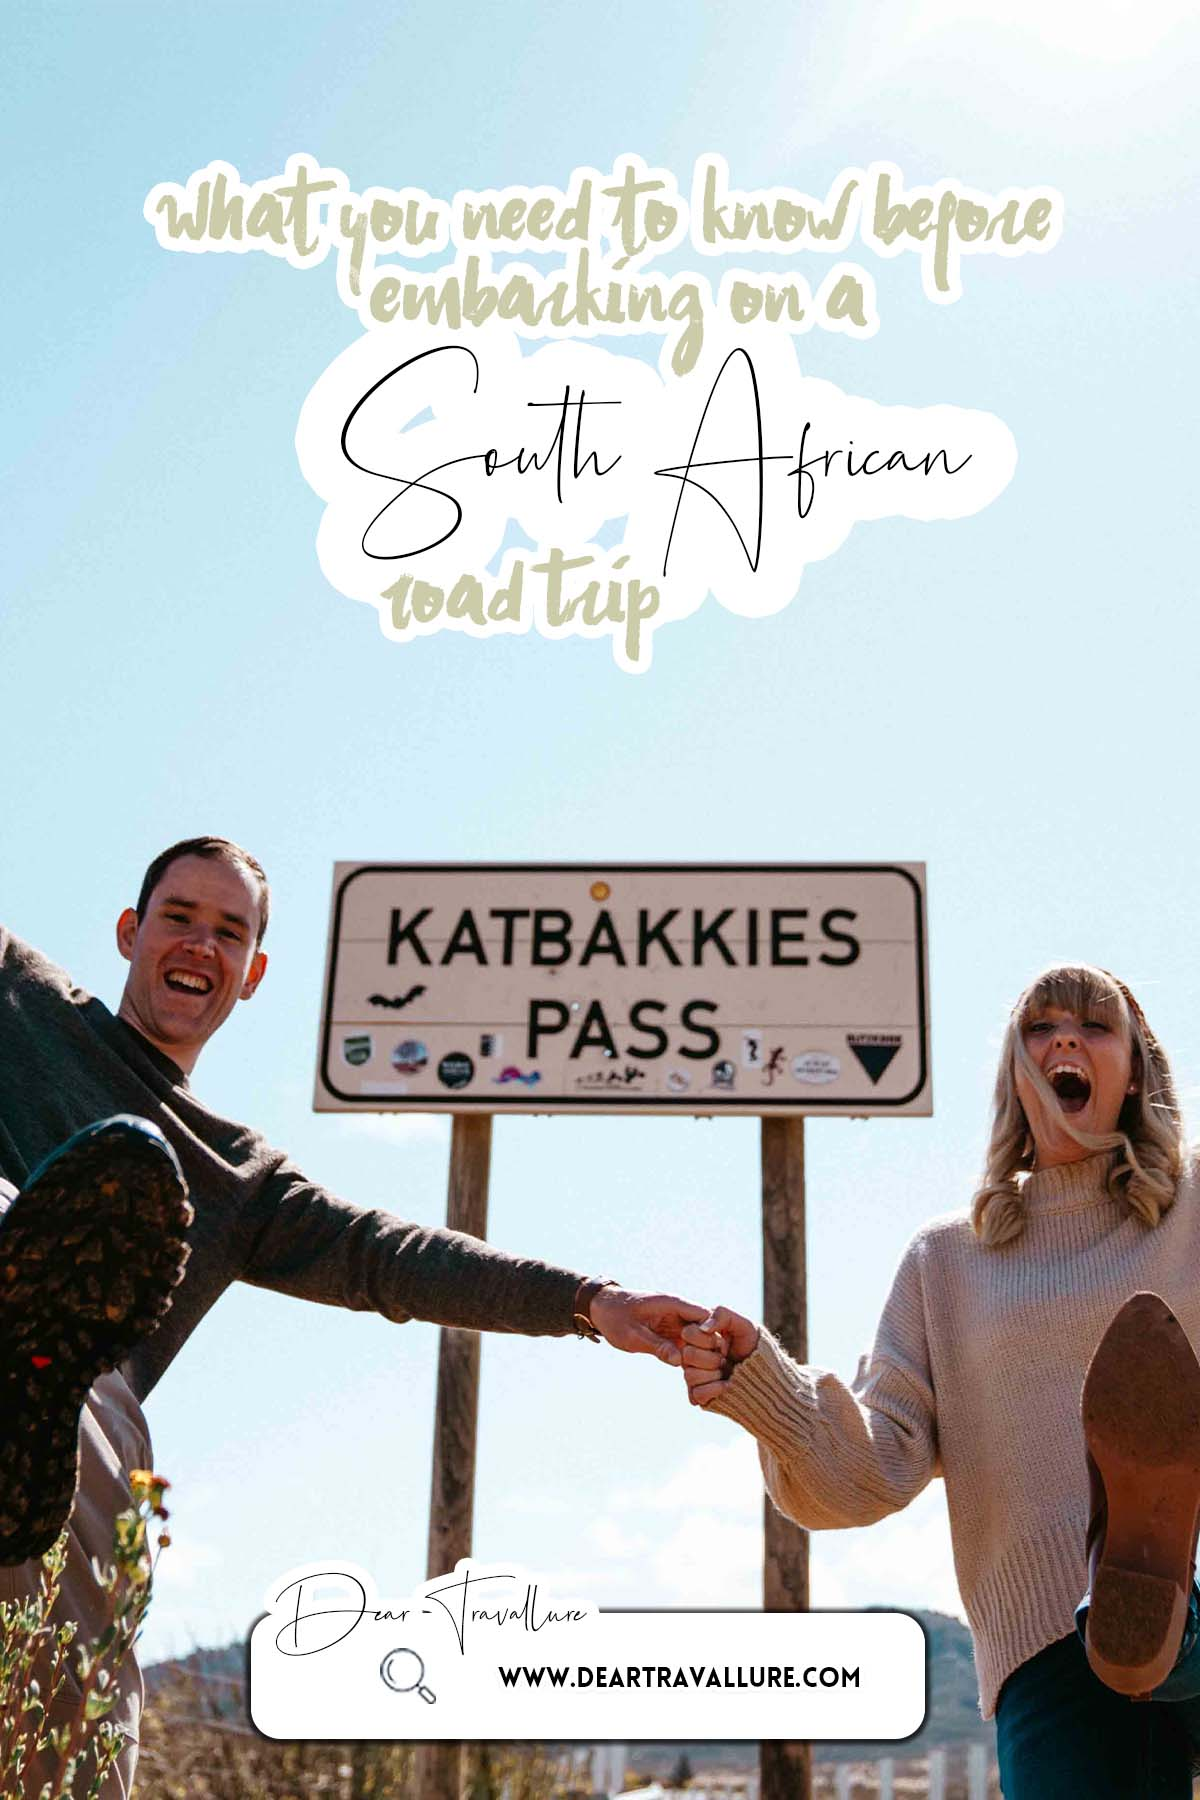 What You Need To Know Before You Embark On A South African Road Trip - Pinterest Image